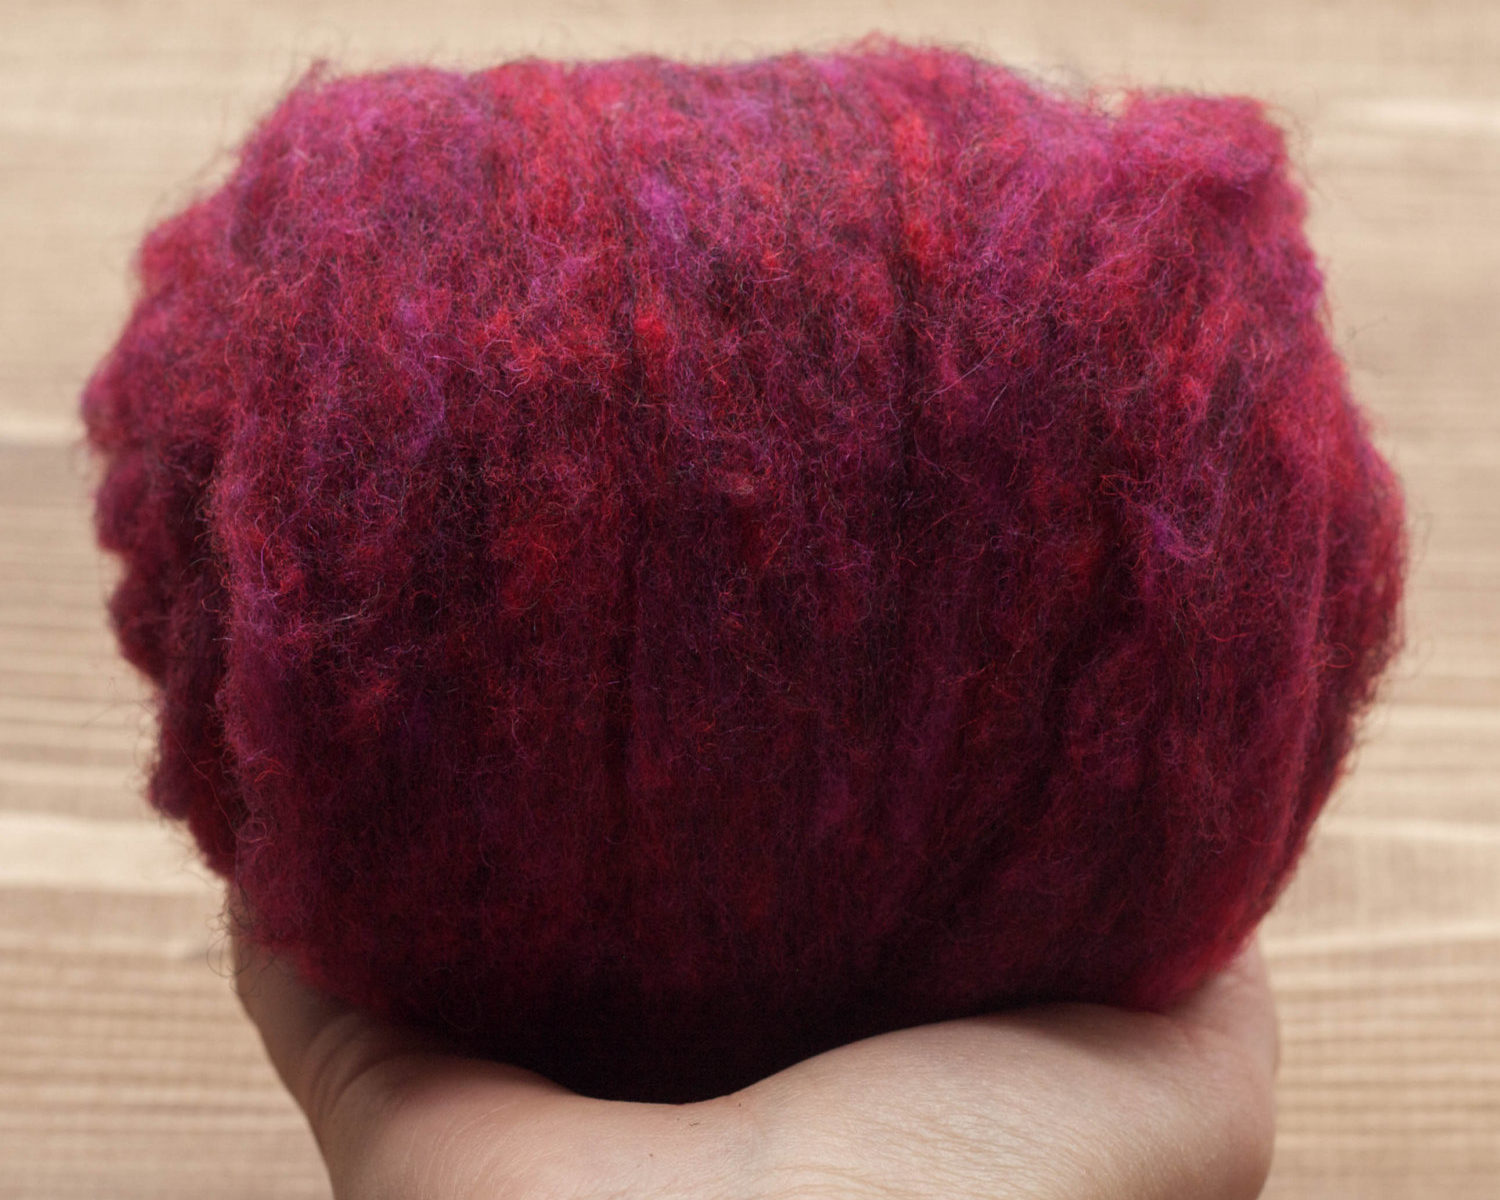 Black Cherry Needle Felting Wool, Wool Batting, Batts, Wet Felting, Spinning, Dyed Felting Wool, Maroon, Dark Magenta, Fiber Art Supplies